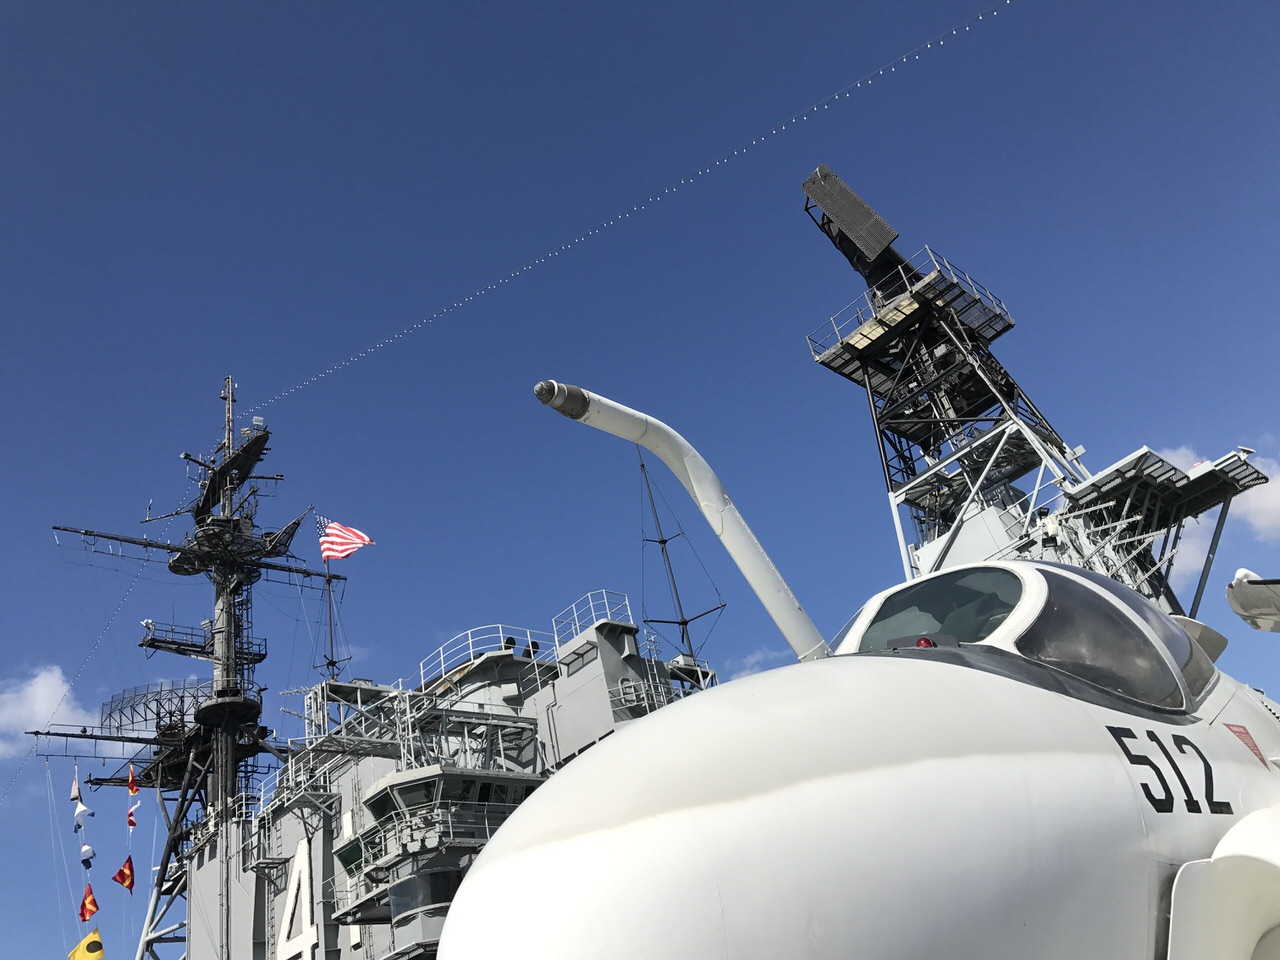 Uss midway museum 0617